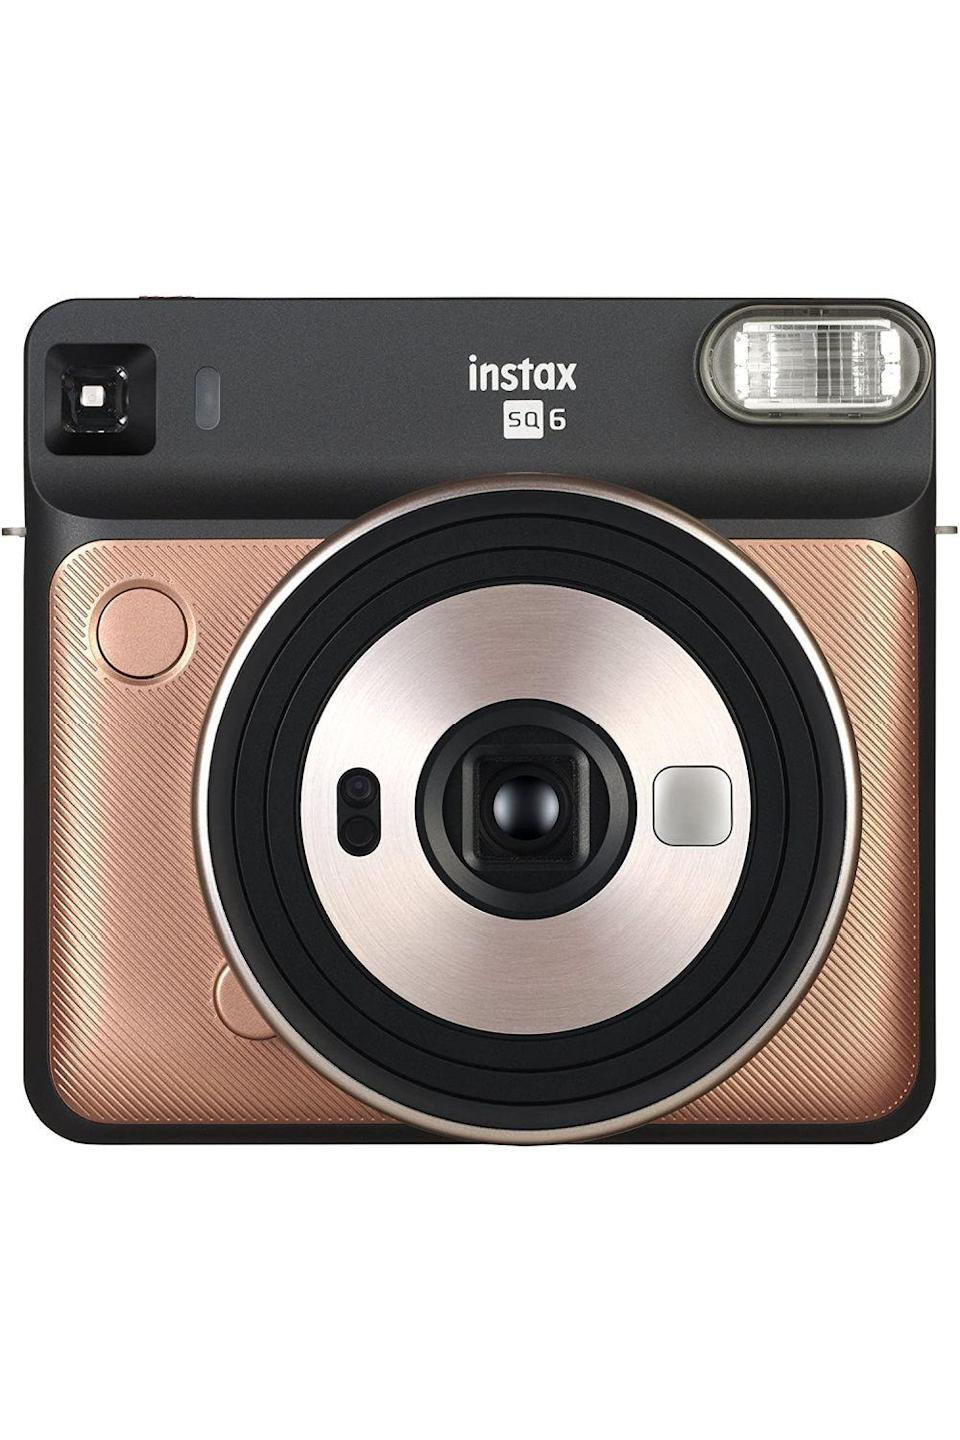 """<p><strong>instax</strong></p><p>amazon.com</p><p><strong>$82.99</strong></p><p><a href=""""https://www.amazon.com/dp/B07CV6XRBD?tag=syn-yahoo-20&ascsubtag=%5Bartid%7C10049.g.36149947%5Bsrc%7Cyahoo-us"""" rel=""""nofollow noopener"""" target=""""_blank"""" data-ylk=""""slk:Shop Now"""" class=""""link rapid-noclick-resp"""">Shop Now</a></p><p>This instant camera comes equipped with color filters, five different shooting modes (for taking the perfect selfies, landscapes, and close-up photos), and other features for making your instant photos look even cooler.</p>"""